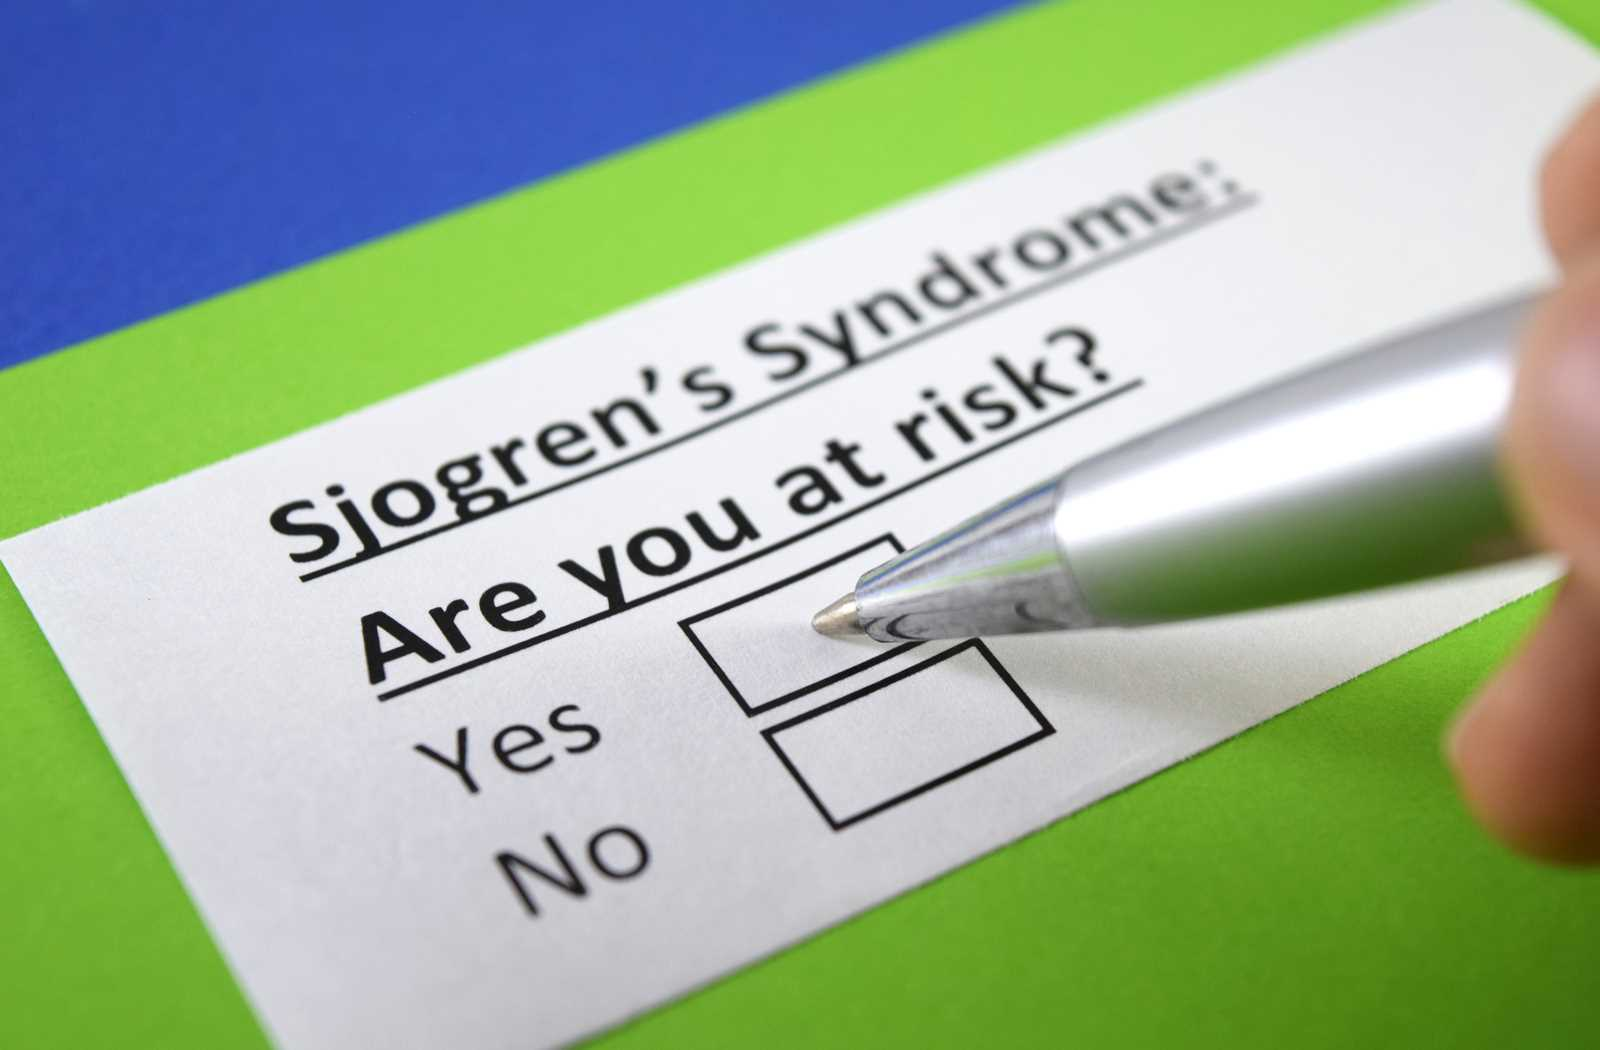 Silver pen and green and blue paper questionnaire for sjogren's syndrome asking if you're at risk